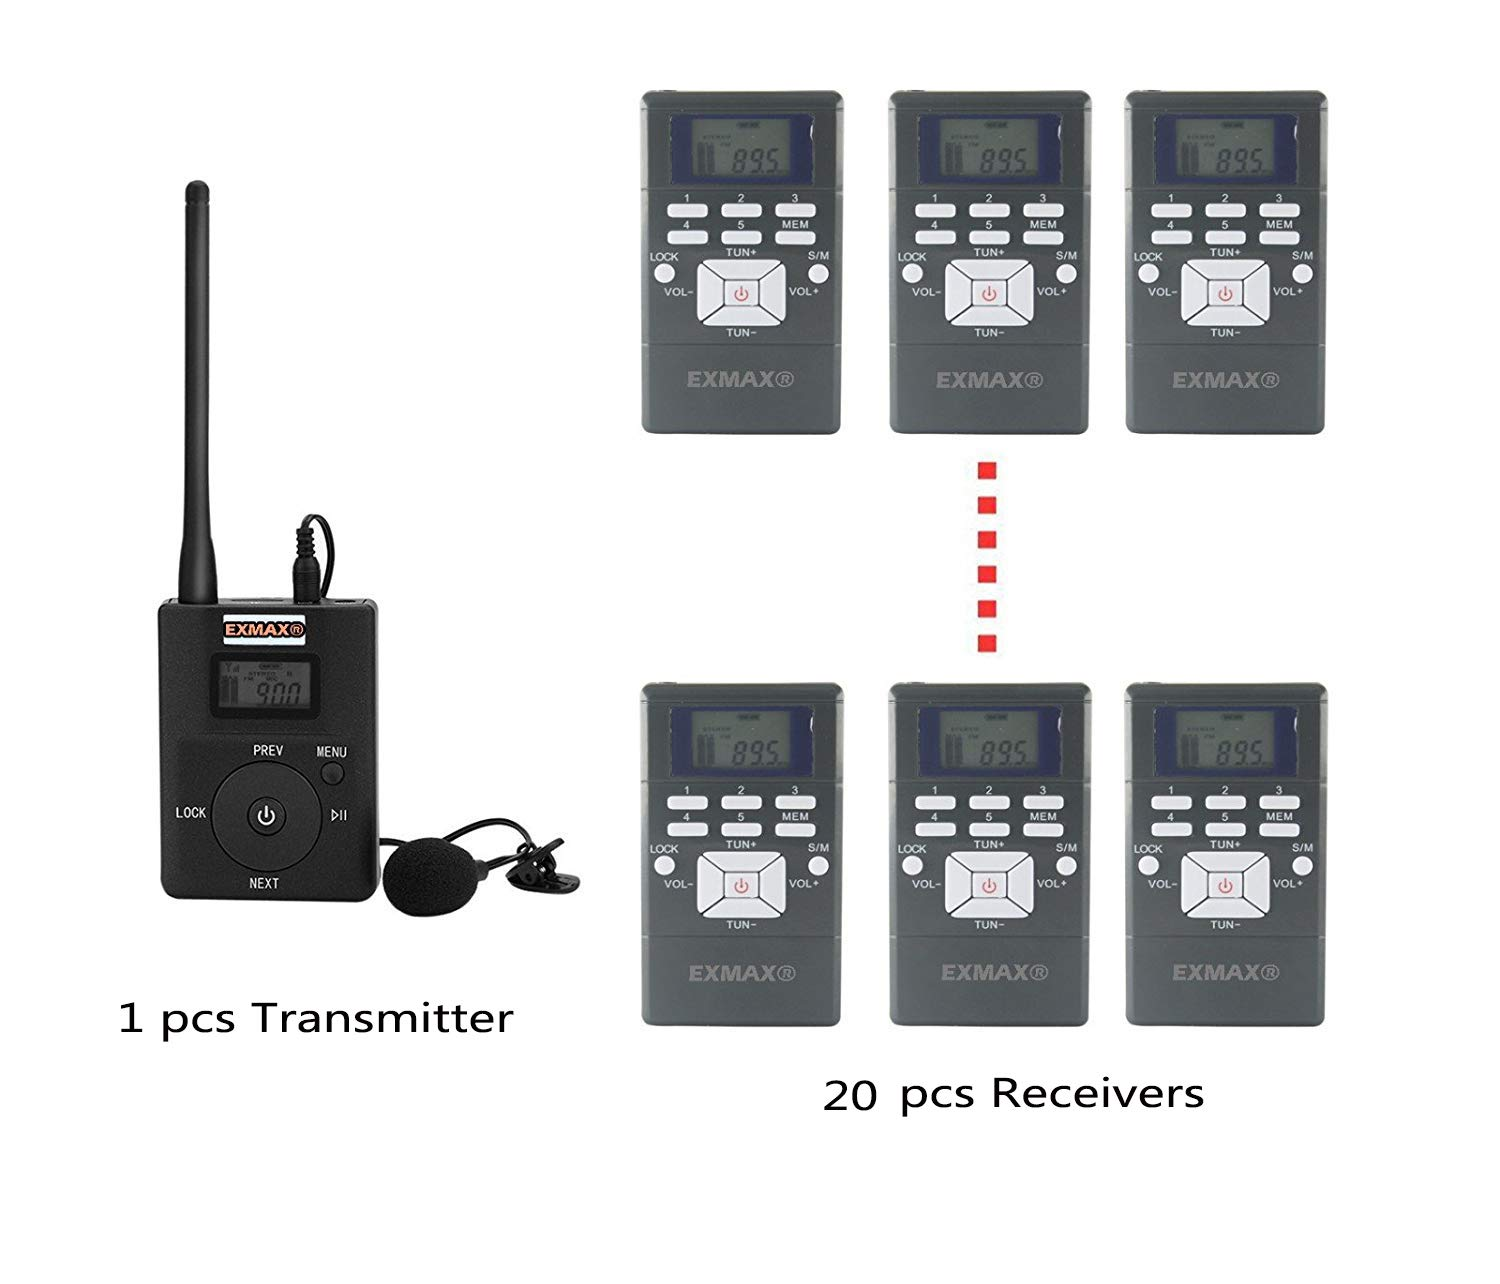 EXMAX 60-108MHz Portable DSP Stereo Wireless Headsets FM Radio Broadcast System for Tour Guide Teaching Meeting Training Travel Field Interpretation - 1 Transmitter and 20 Receivers Gray